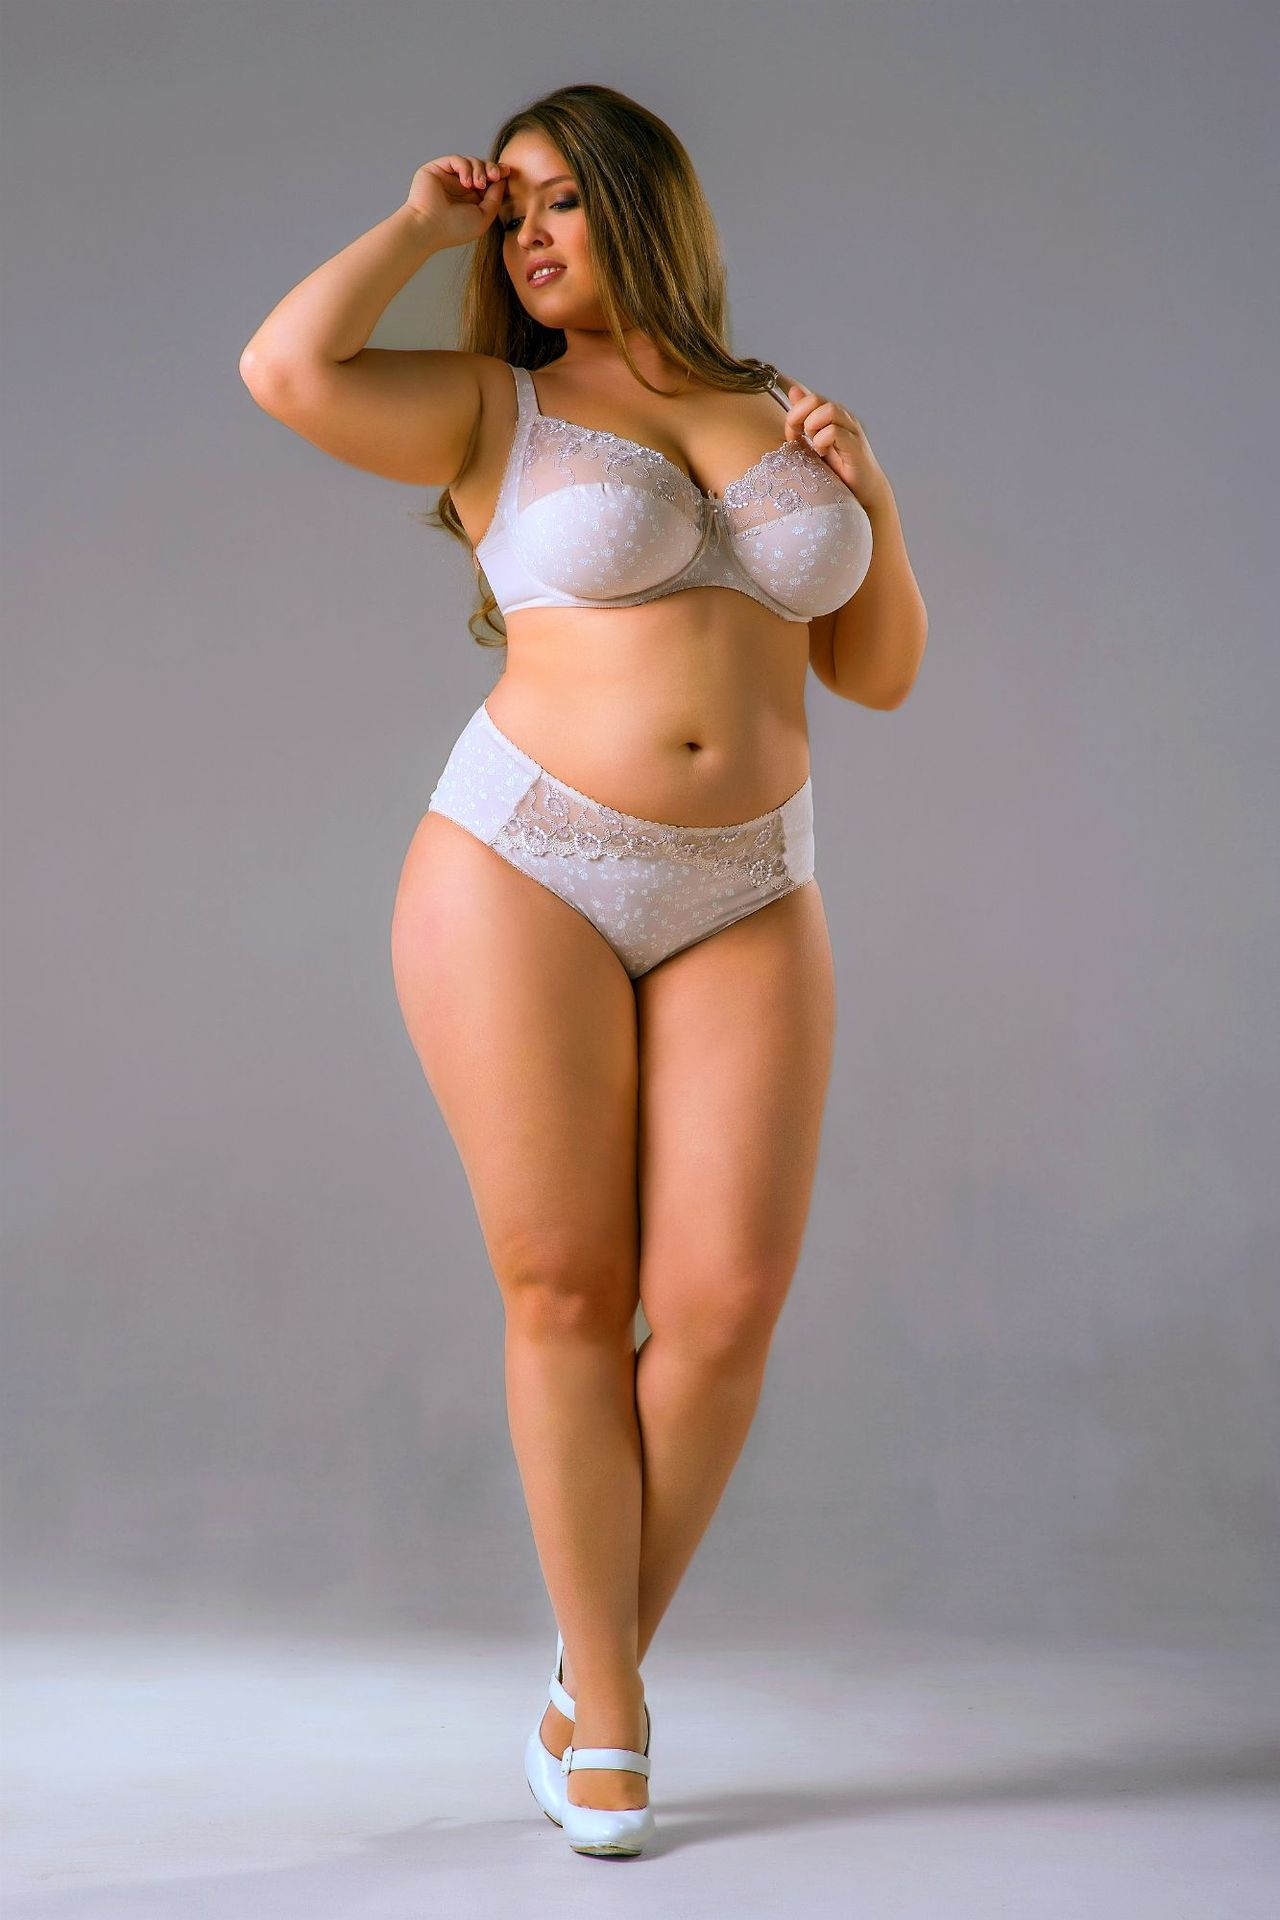 7962bdb243827 Plus Size Models